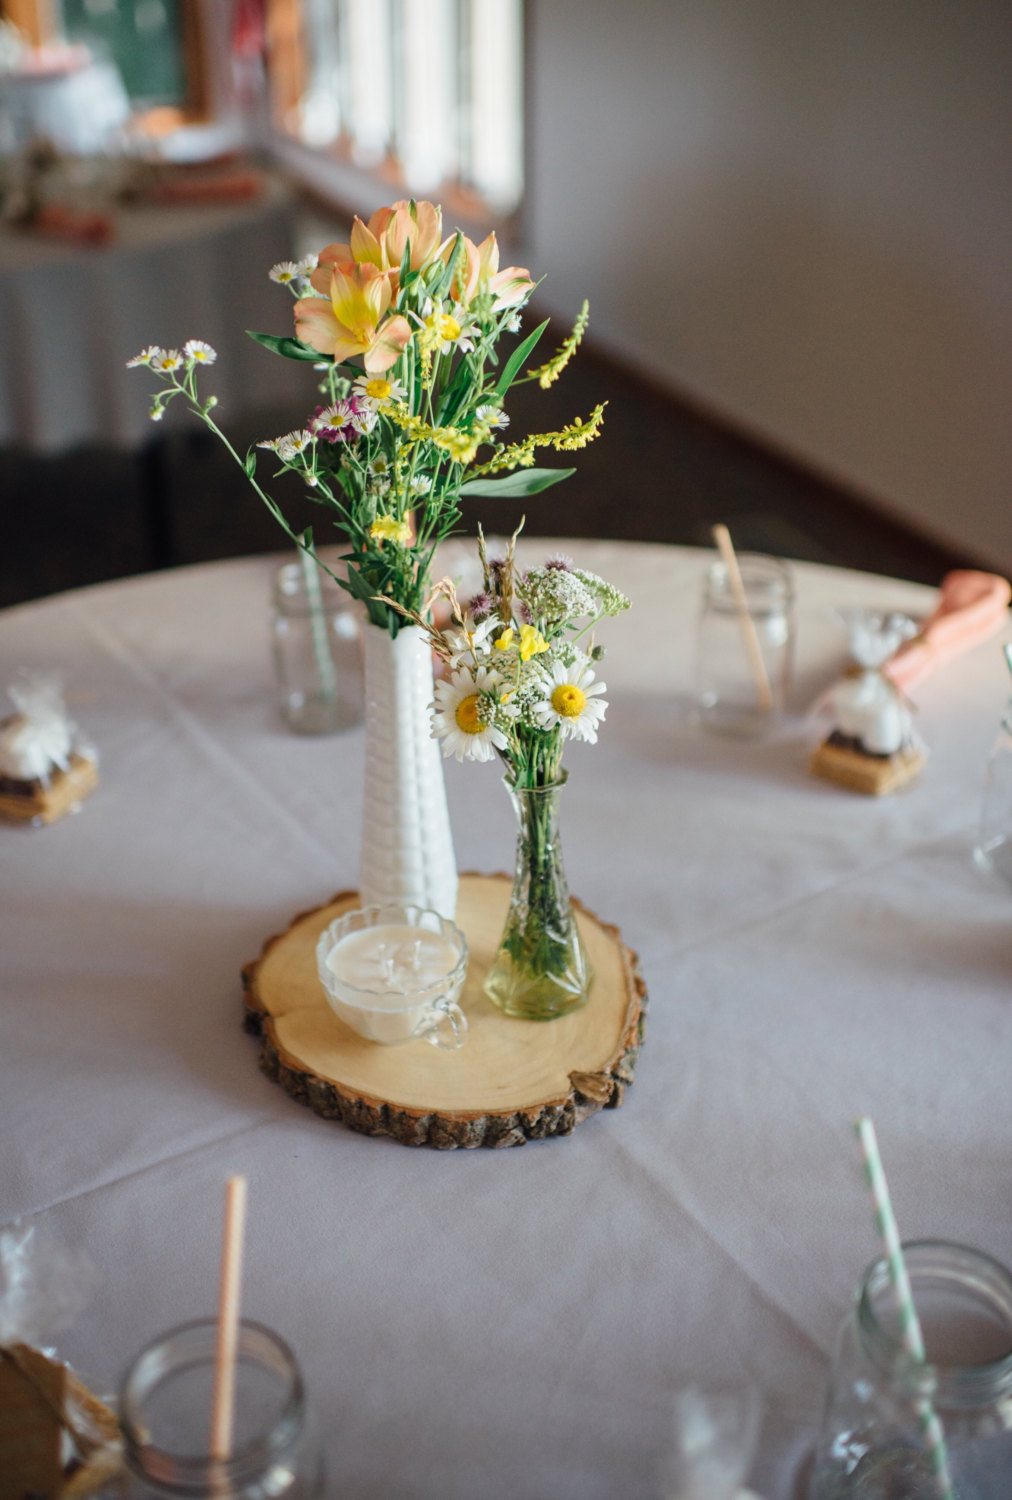 Wood slices for wedding centerpieces where to buy us87 for Buy wedding centerpieces